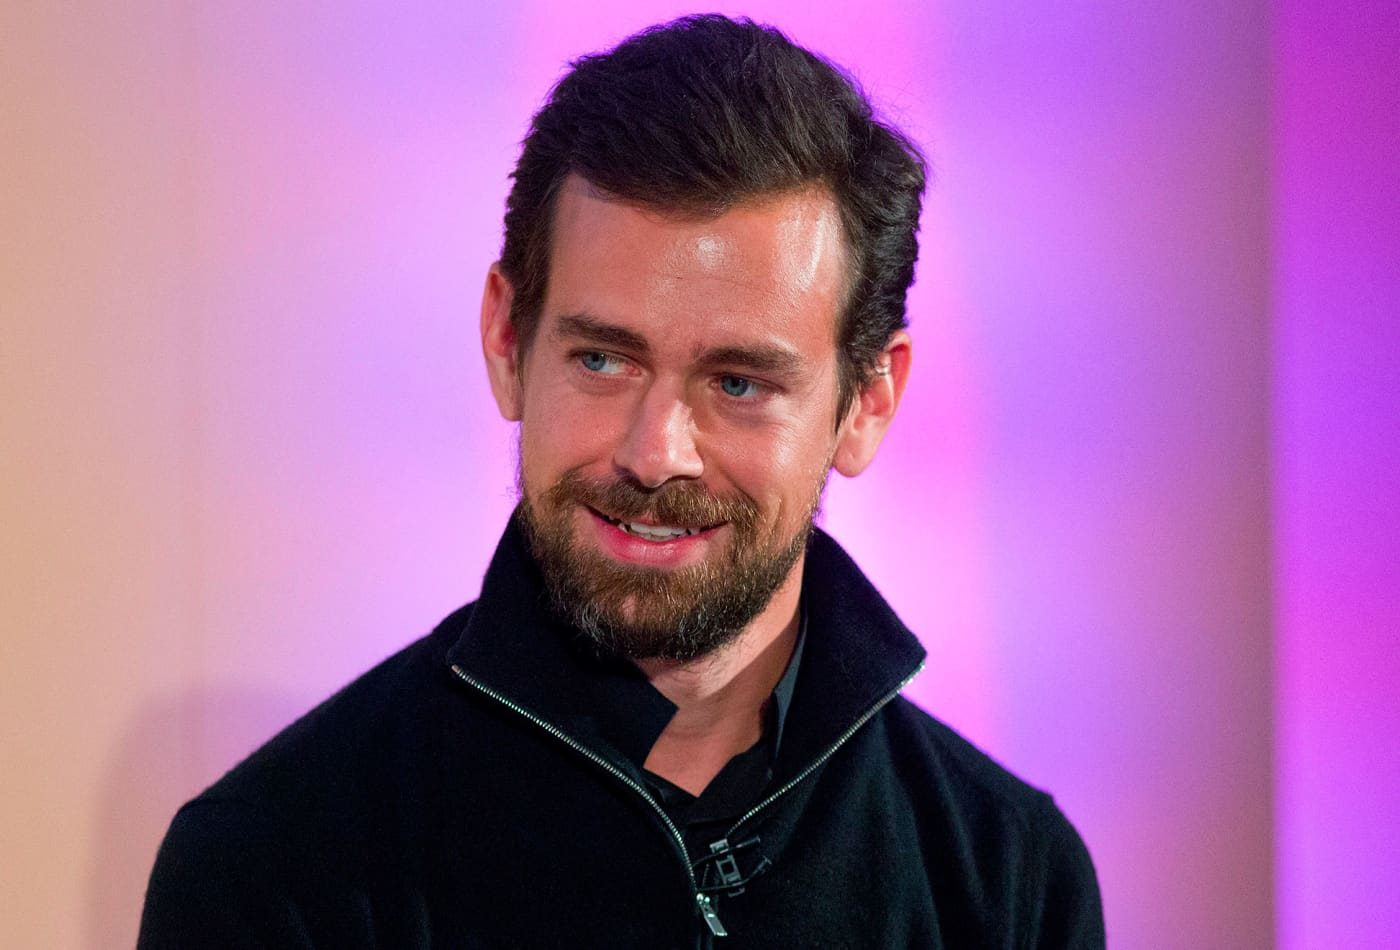 TWITTER FOUNDER FELT TERRIBLE FOR TWITTER INCIDENT